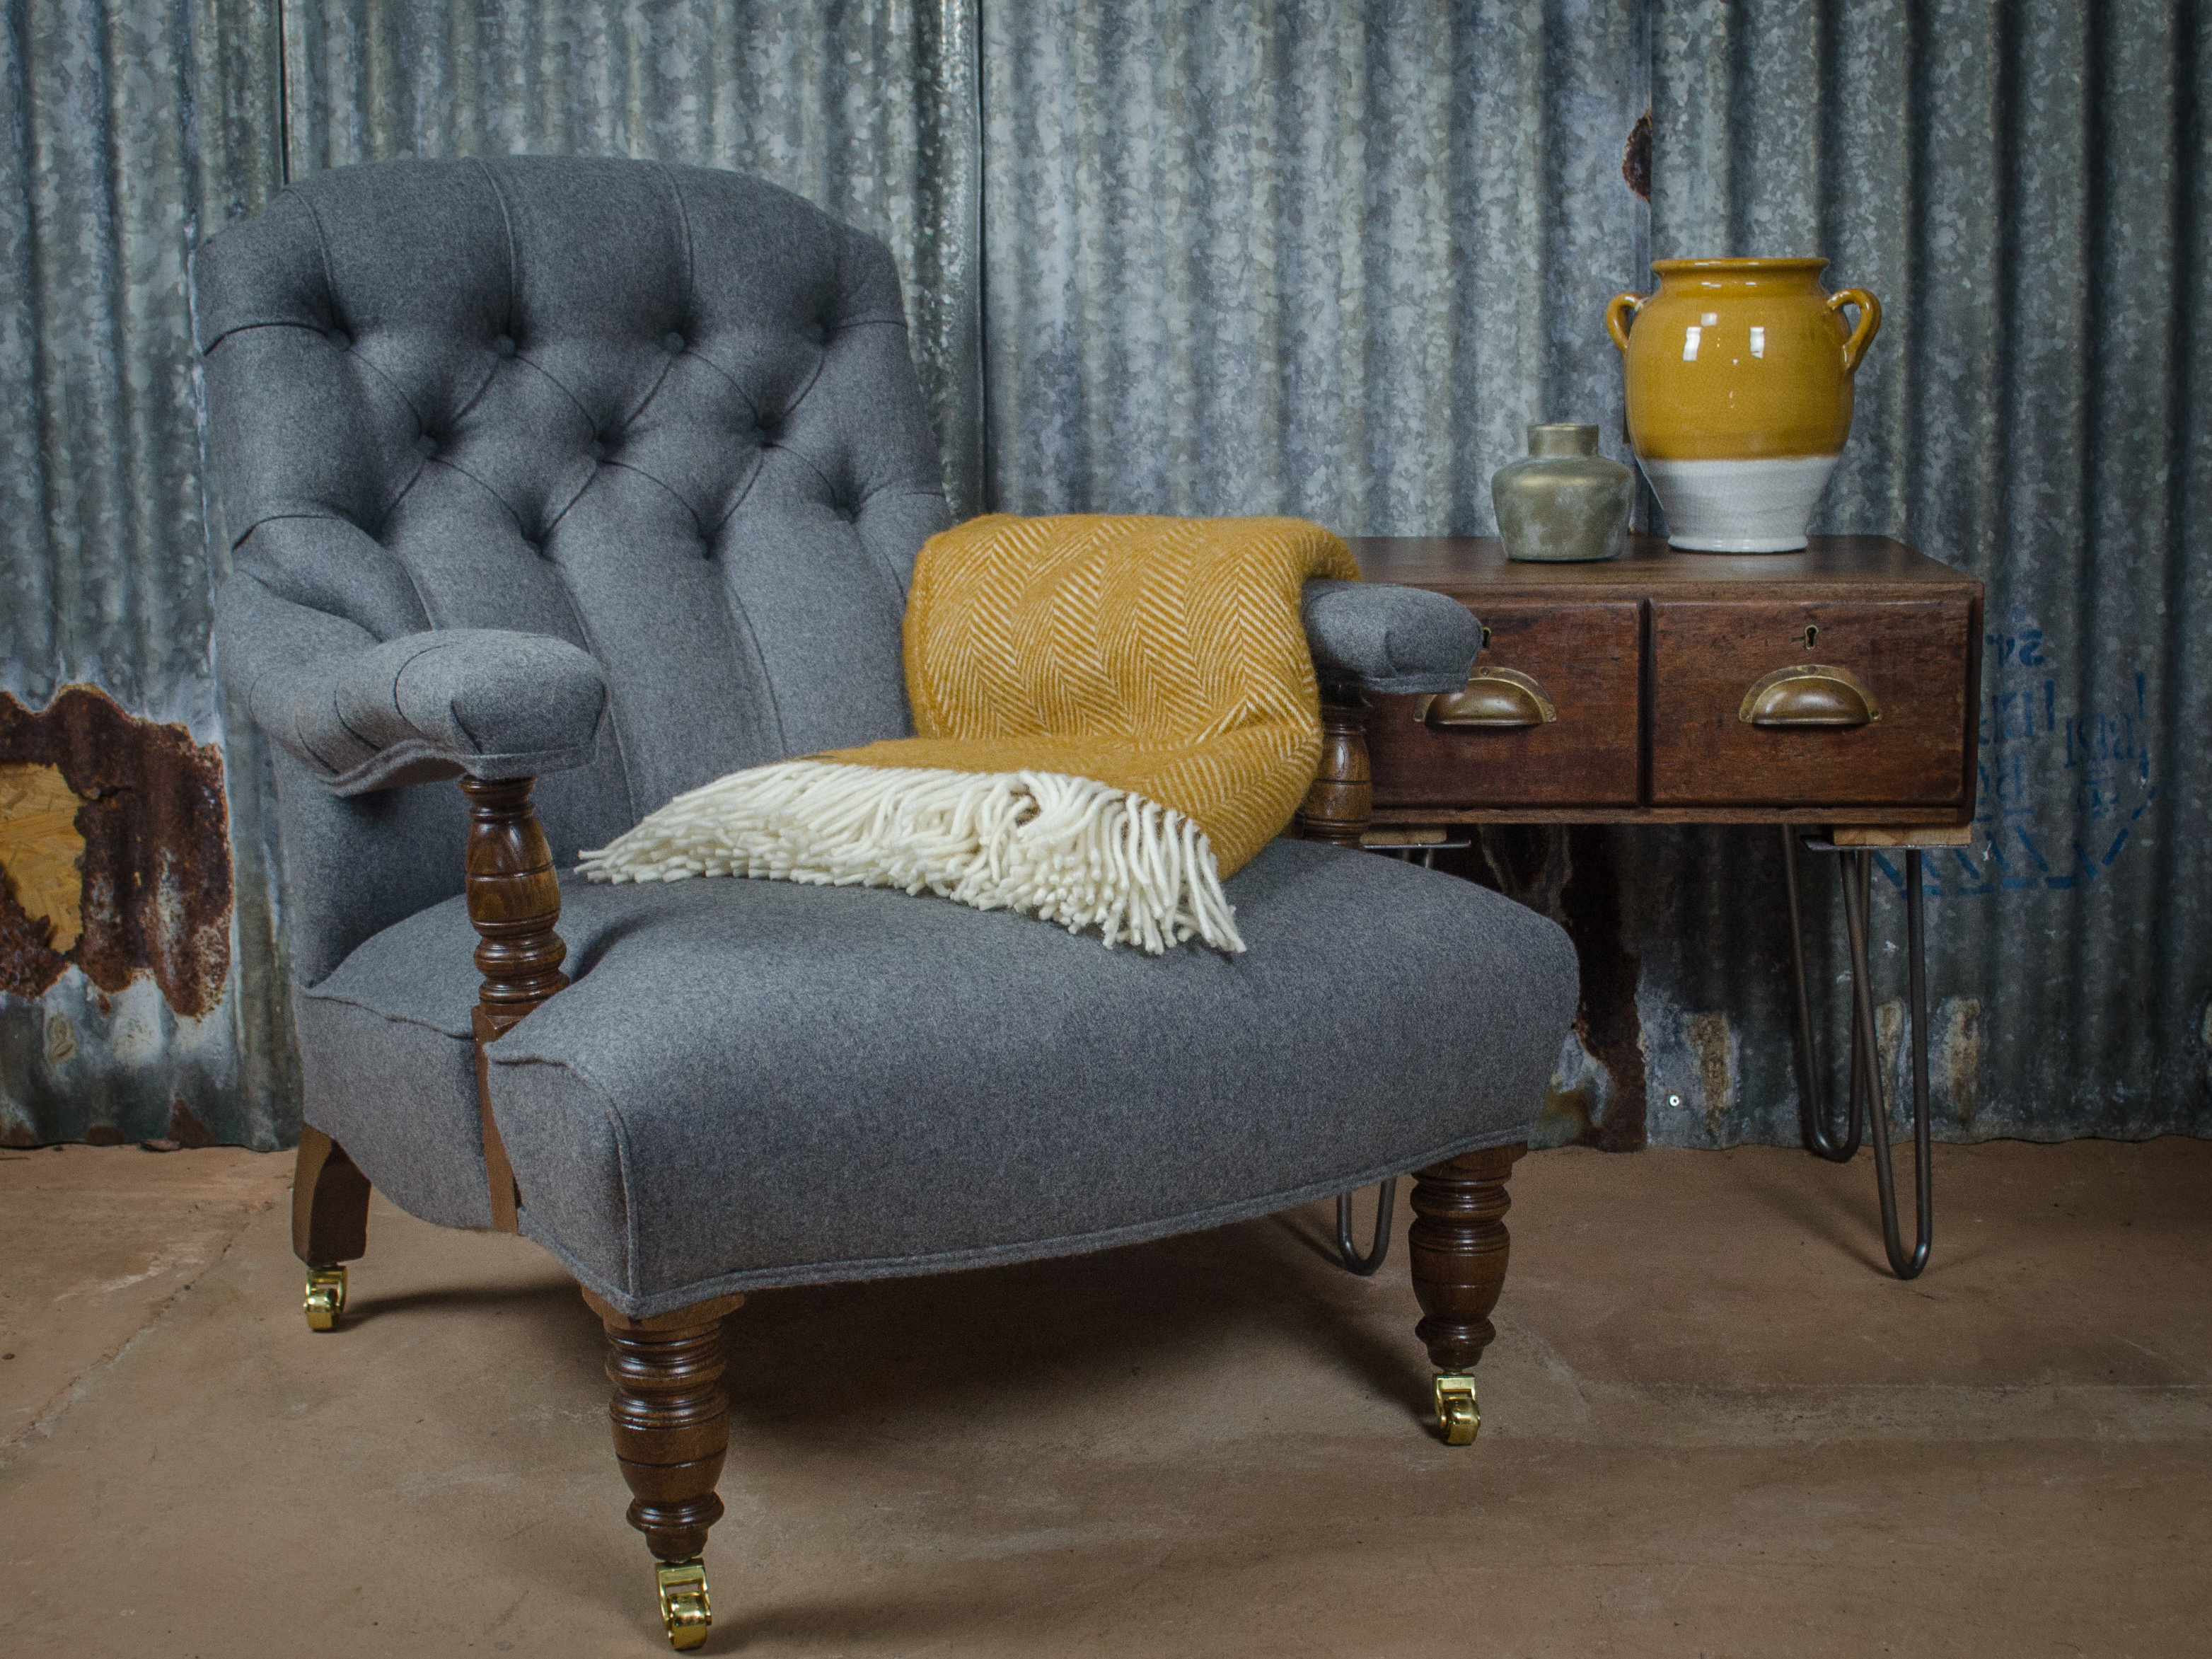 Amy is a trained seamstress and can transform tired furniture into something special